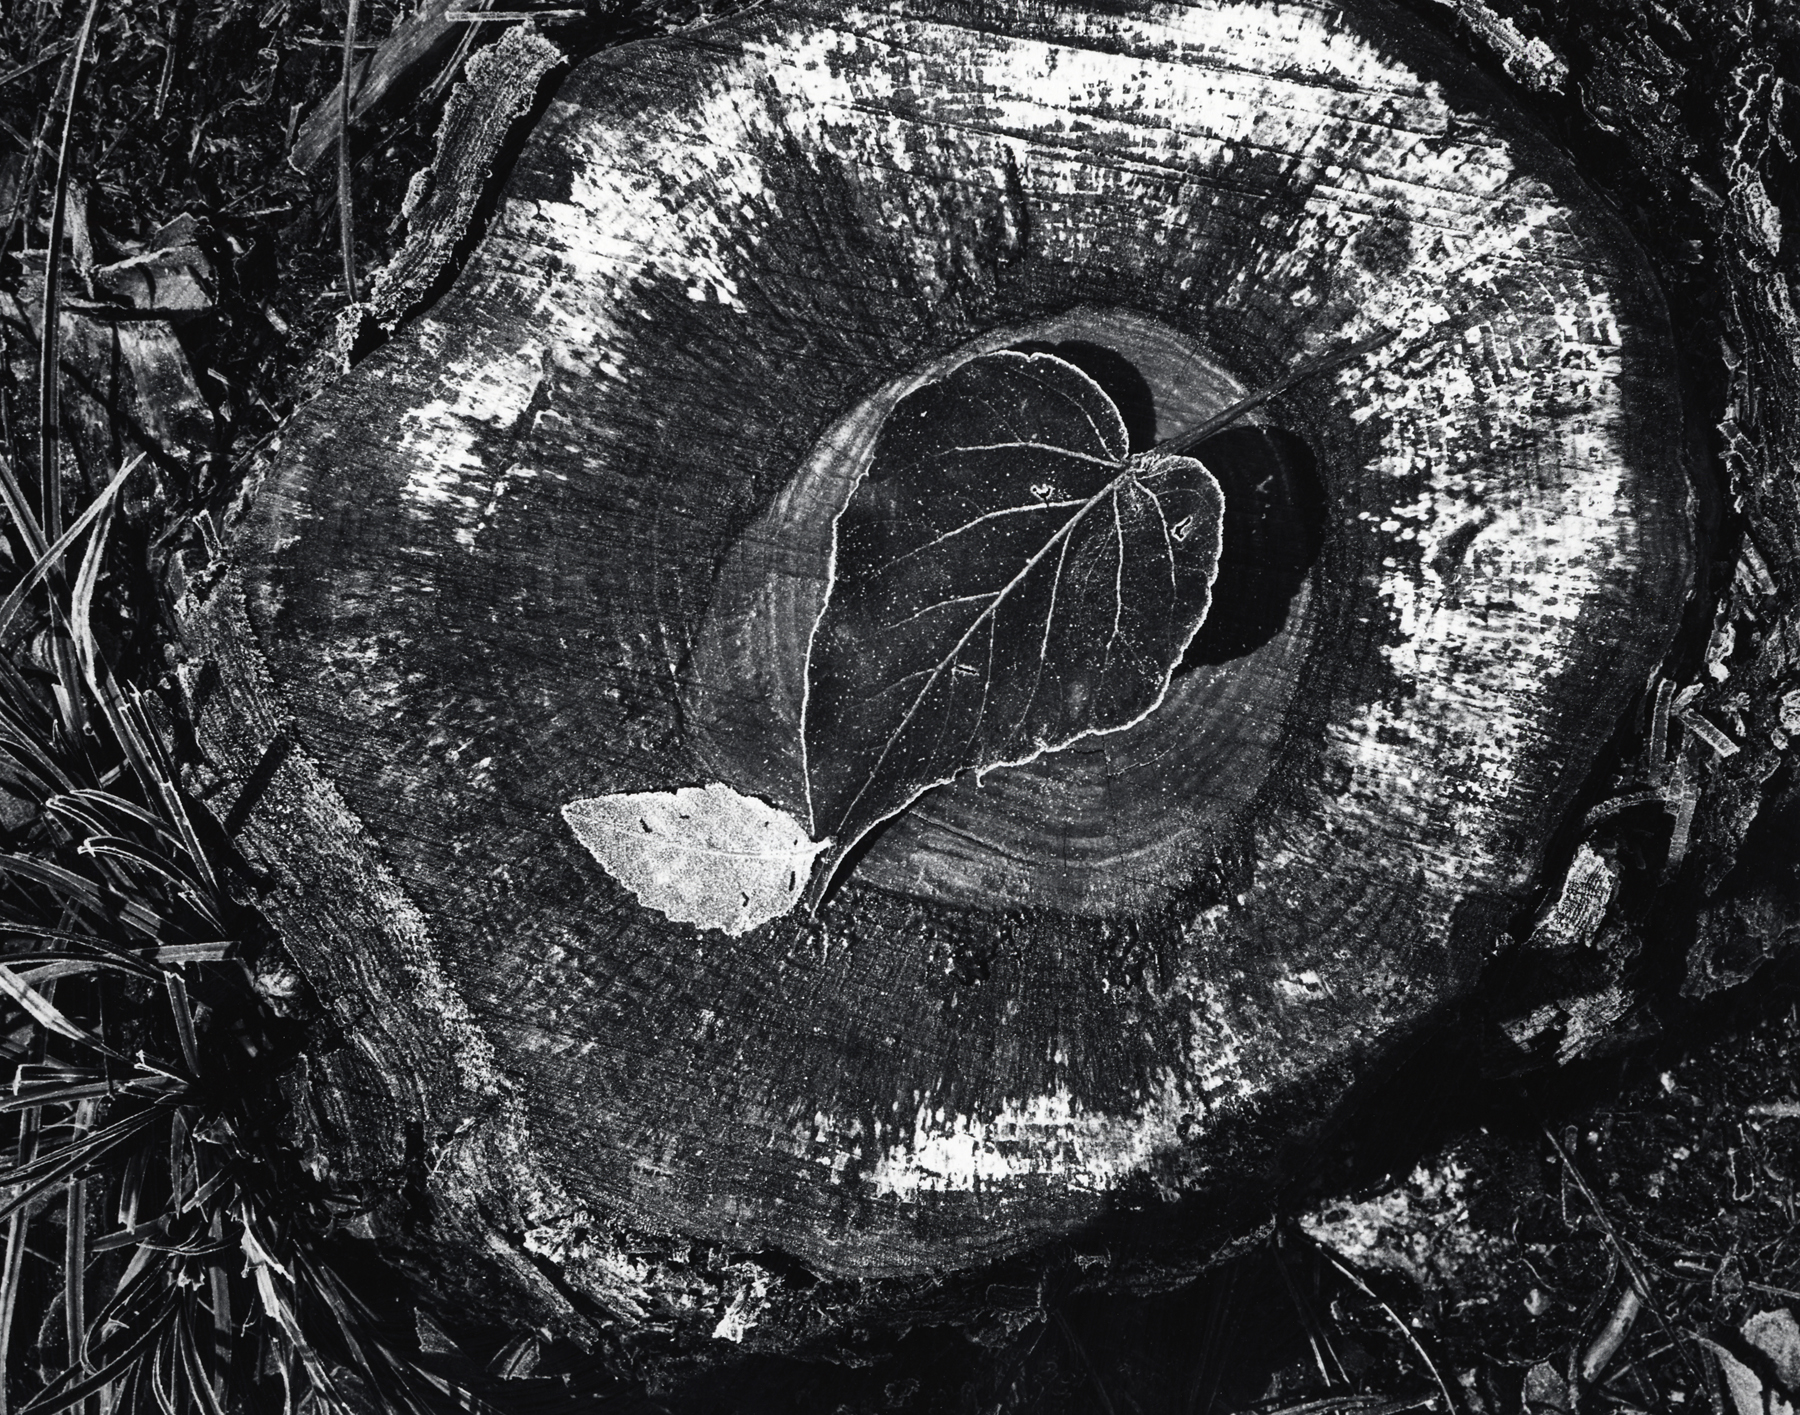 Ansel Adams, Leaves, Frost, Stump, October Morning, Yosemite National Park, c. 1931; gelatin silver print; 9 1/8 x 11 11/16 in. (23.2 x 29.7 cm); Collection of the Center for Creative Photography, University of Arizona; © 2009 The Ansel Adams Publishing Rights Trust